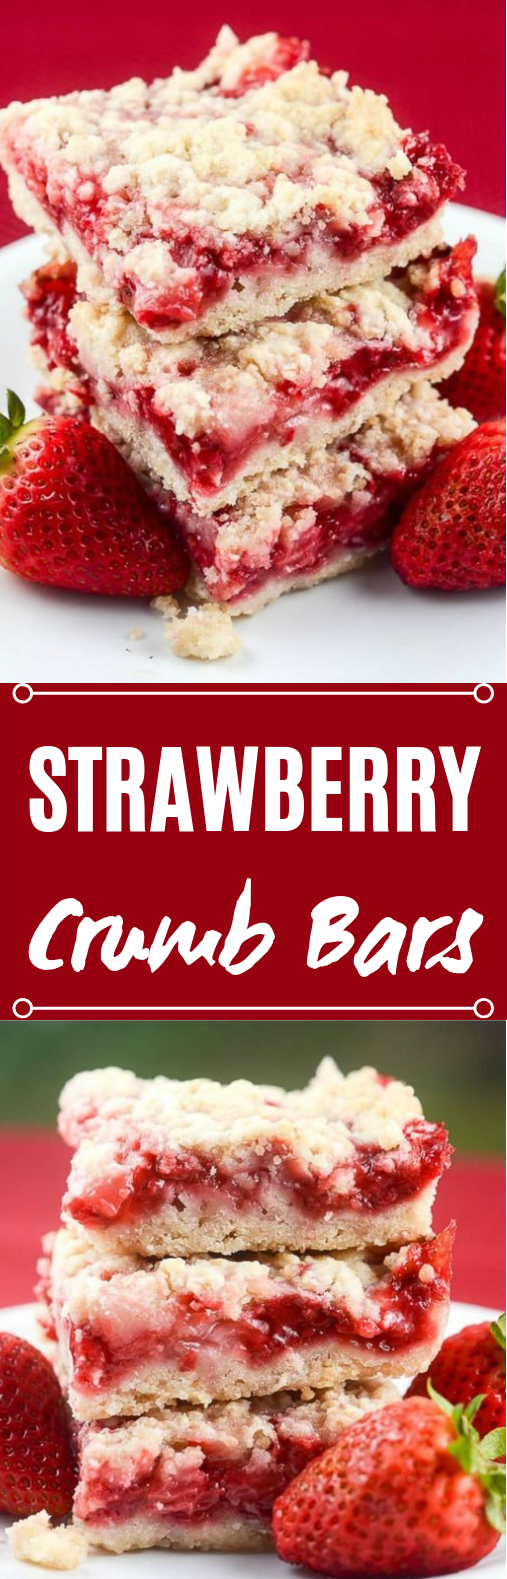 Strawberry Crumb Bars #desserts #bars